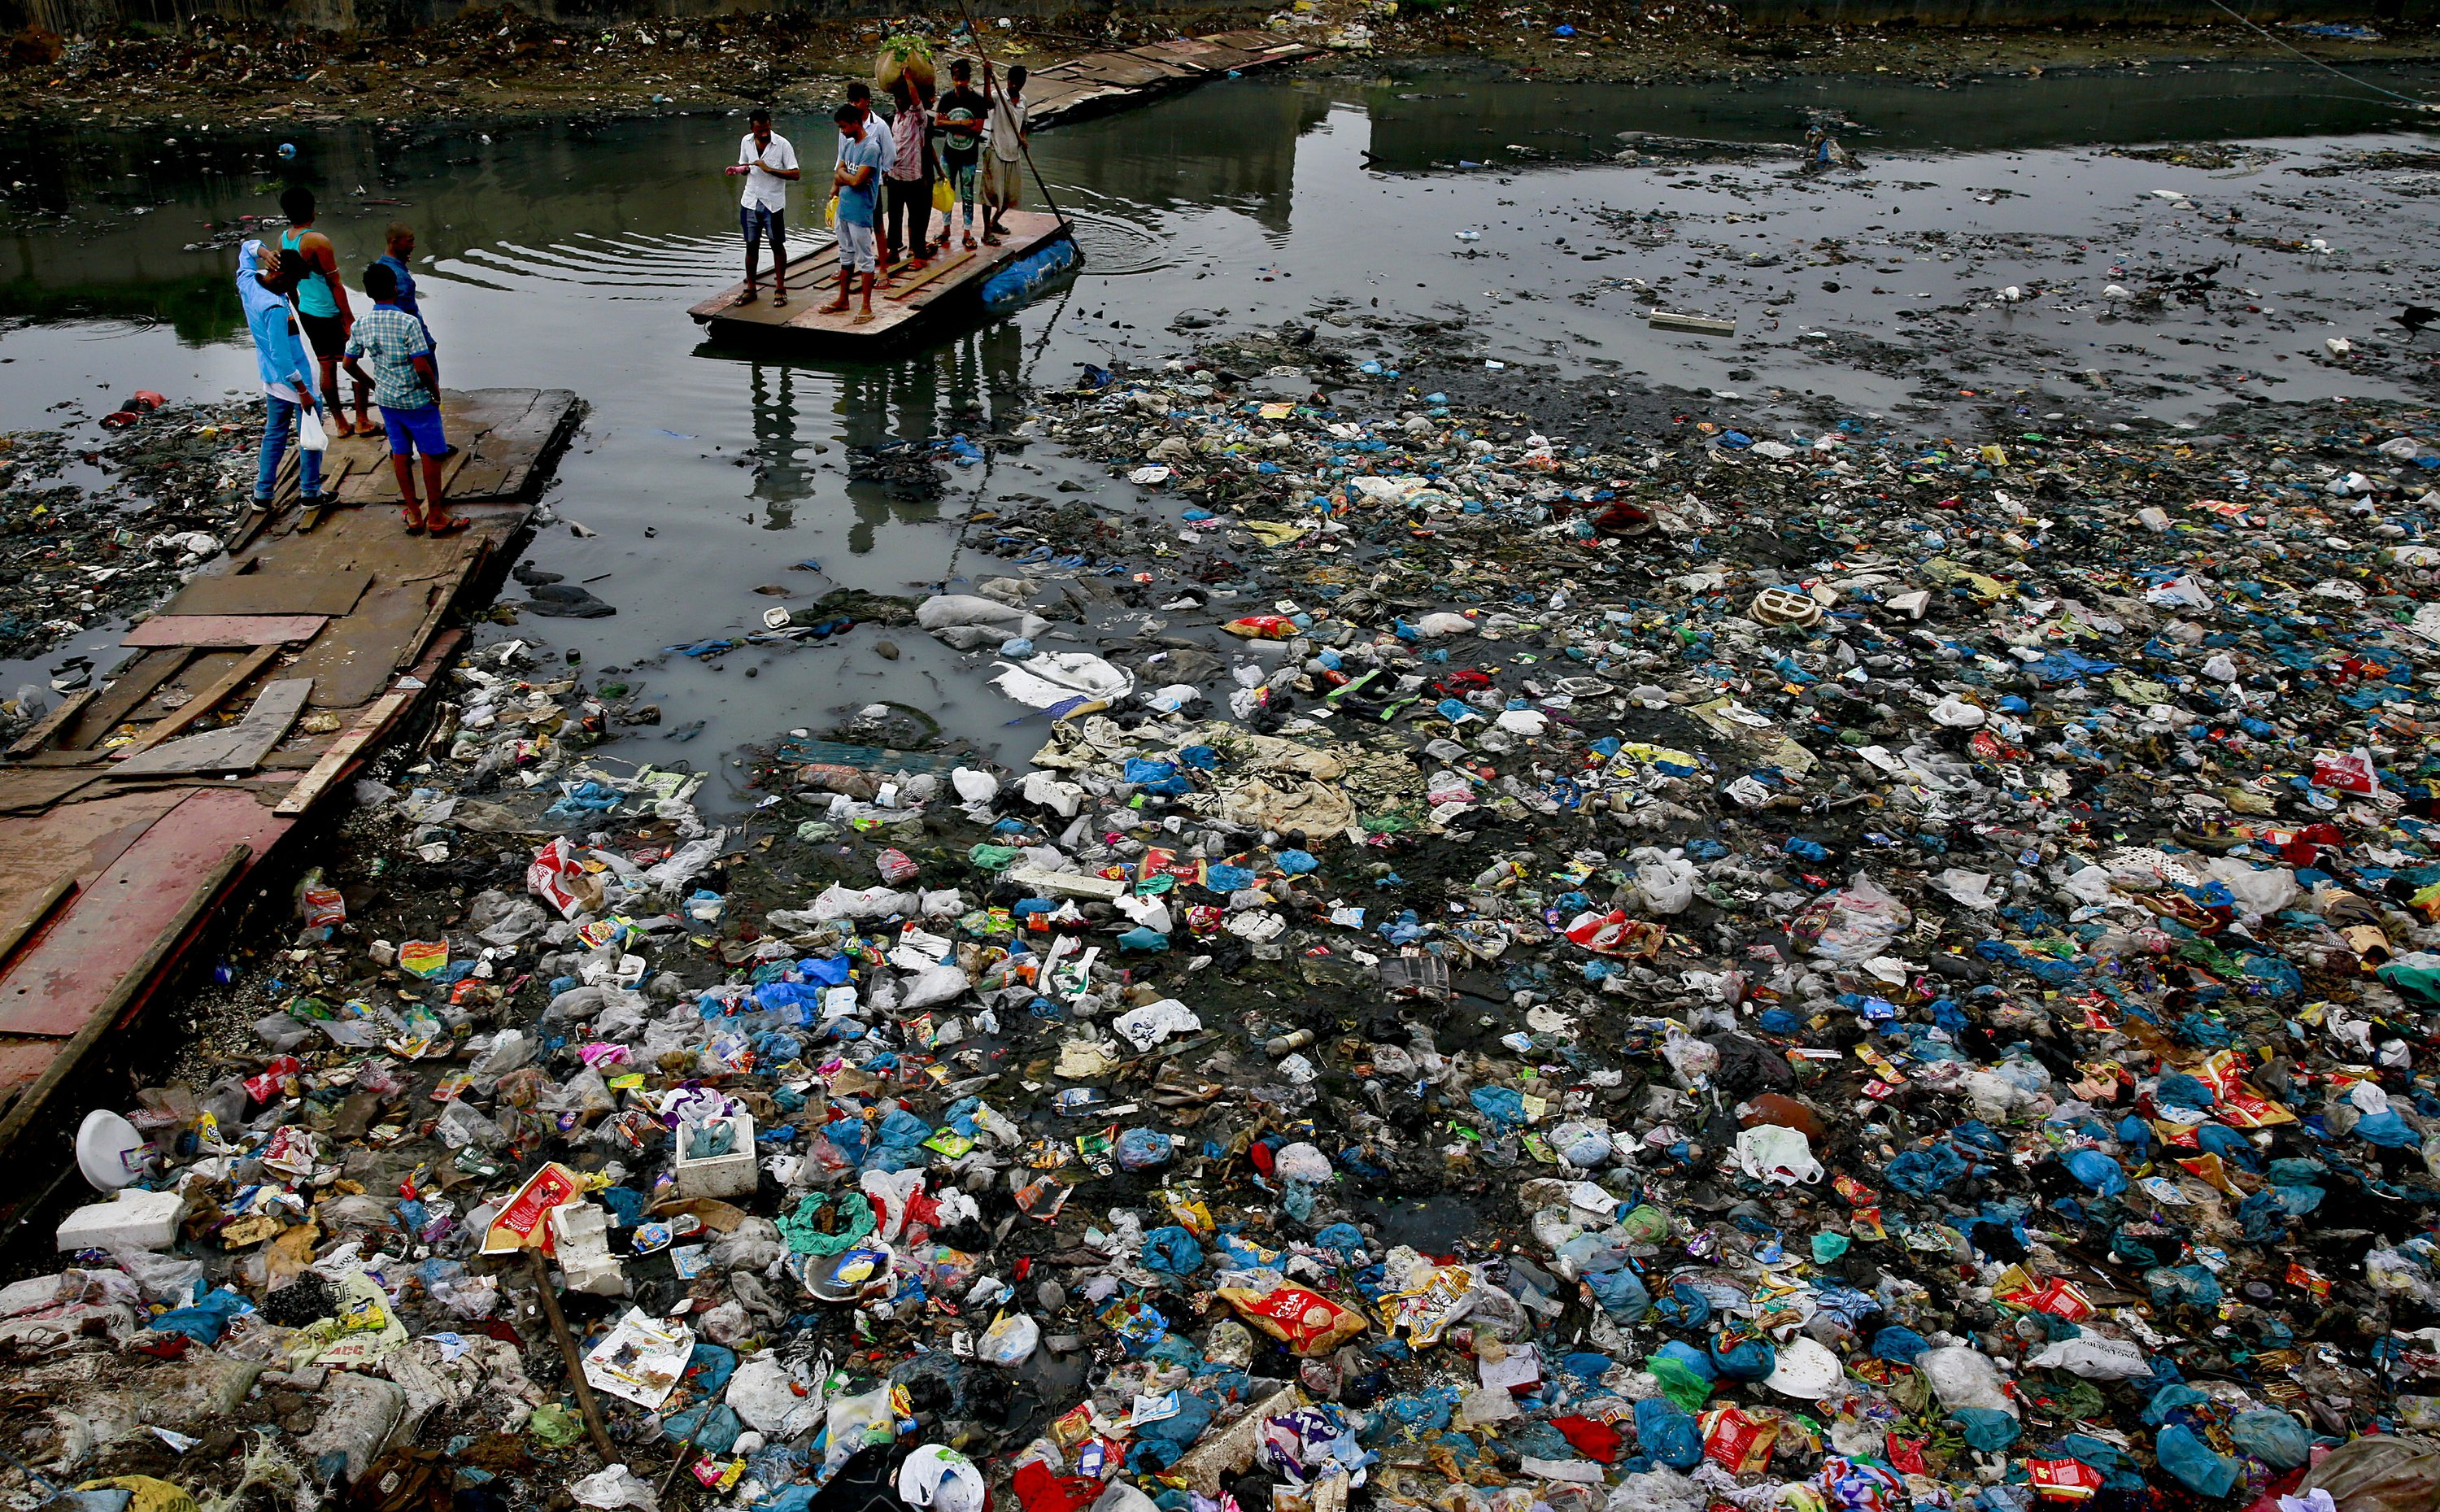 Almost every country in the world has agreed on a legally binding framework for reducing polluting plastic waste, with the United States a notable exception, United Nations environmental officials said Friday